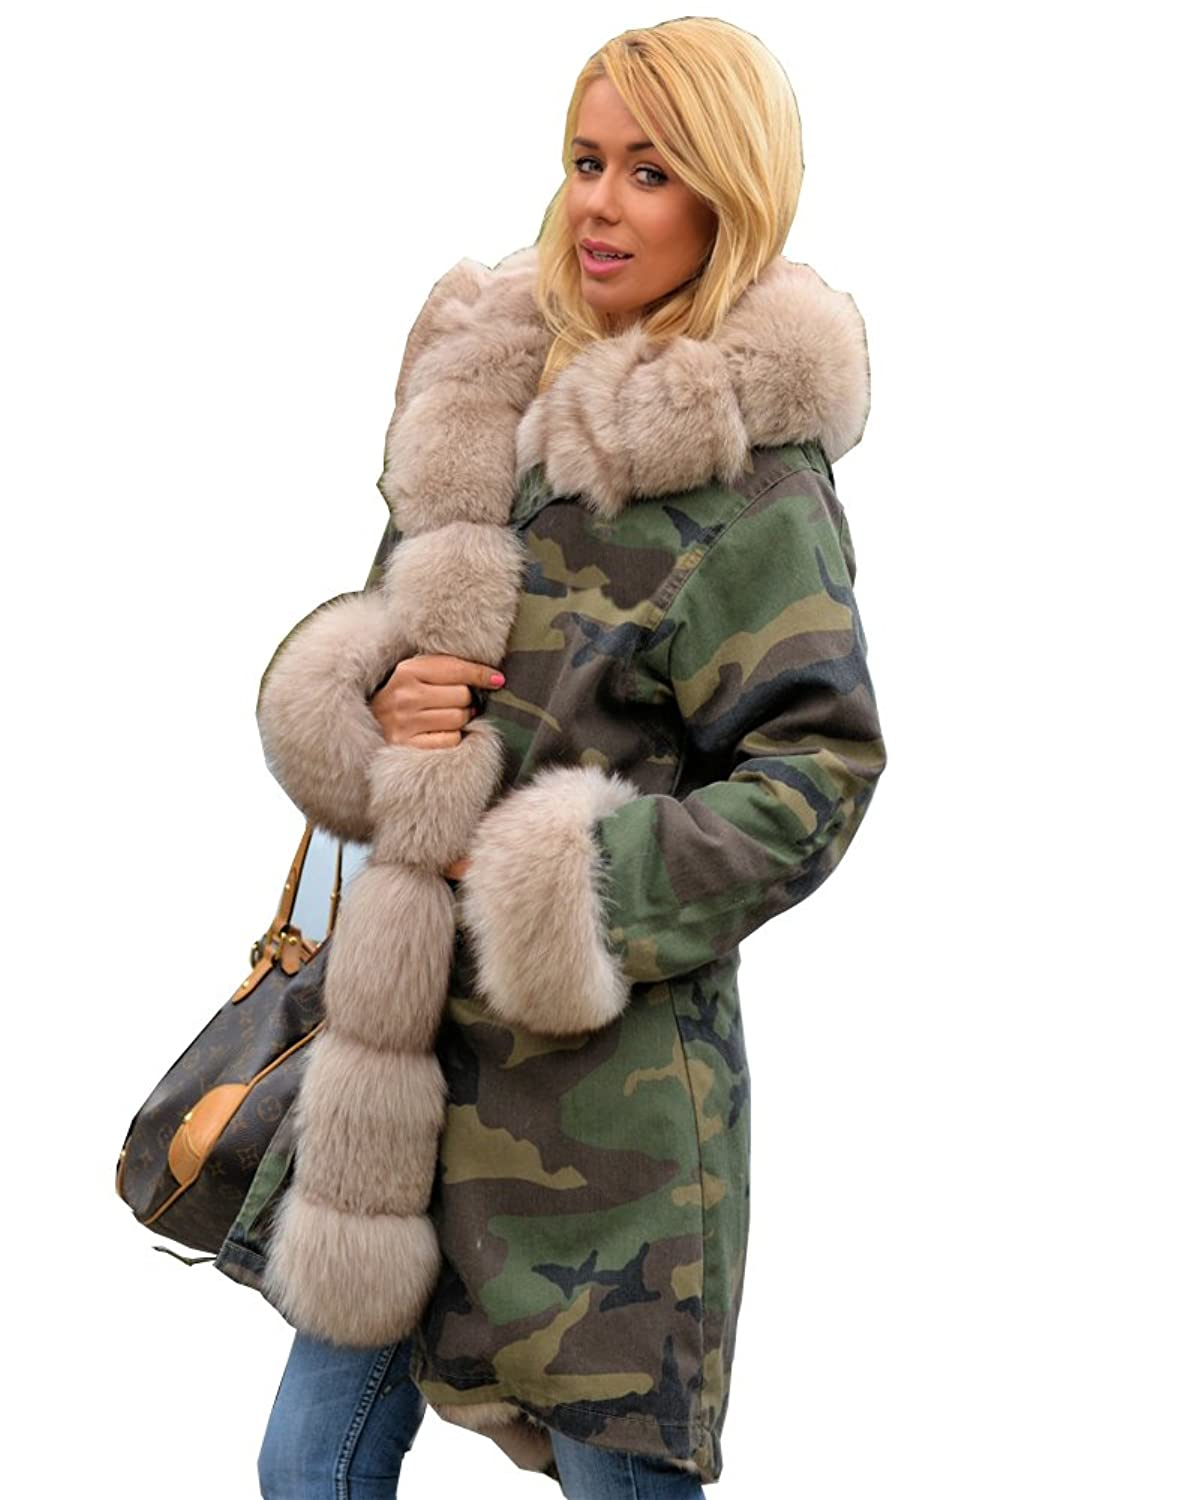 Amazon.com: Roiii Ladies Fur Collar Hooded Parka Military ...